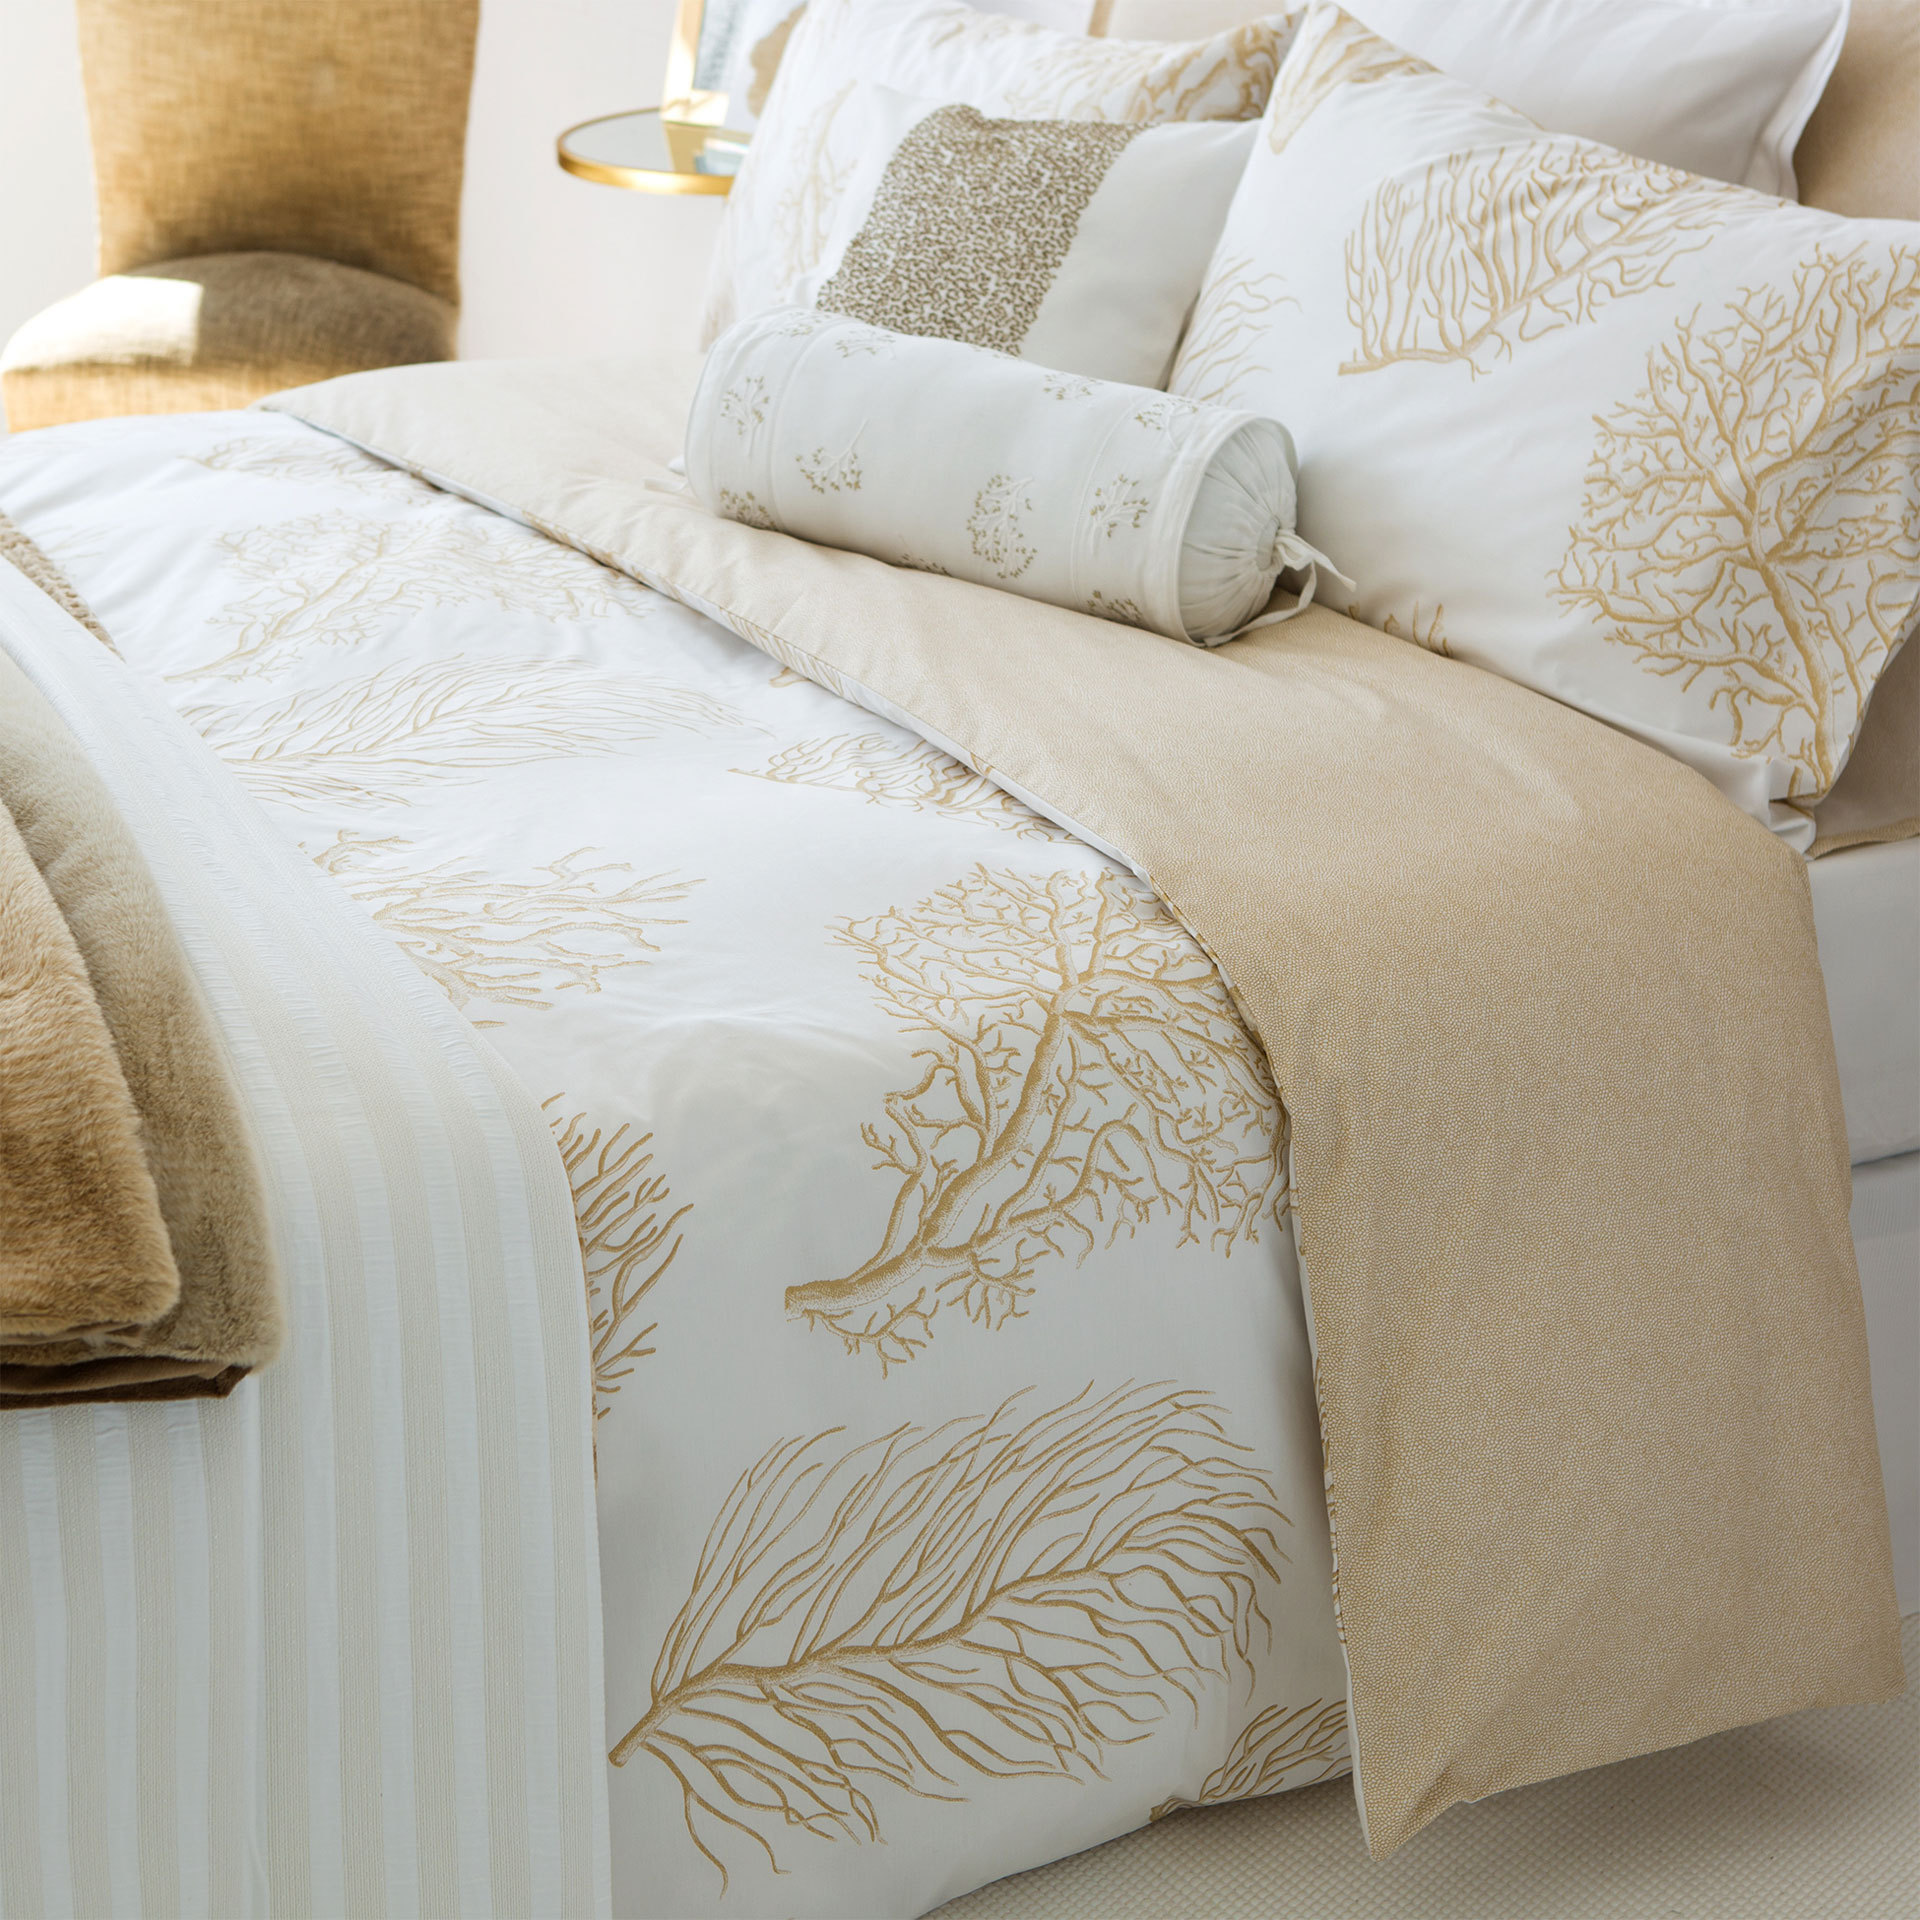 zara home down comforters pillows cover set coral buyma. Black Bedroom Furniture Sets. Home Design Ideas